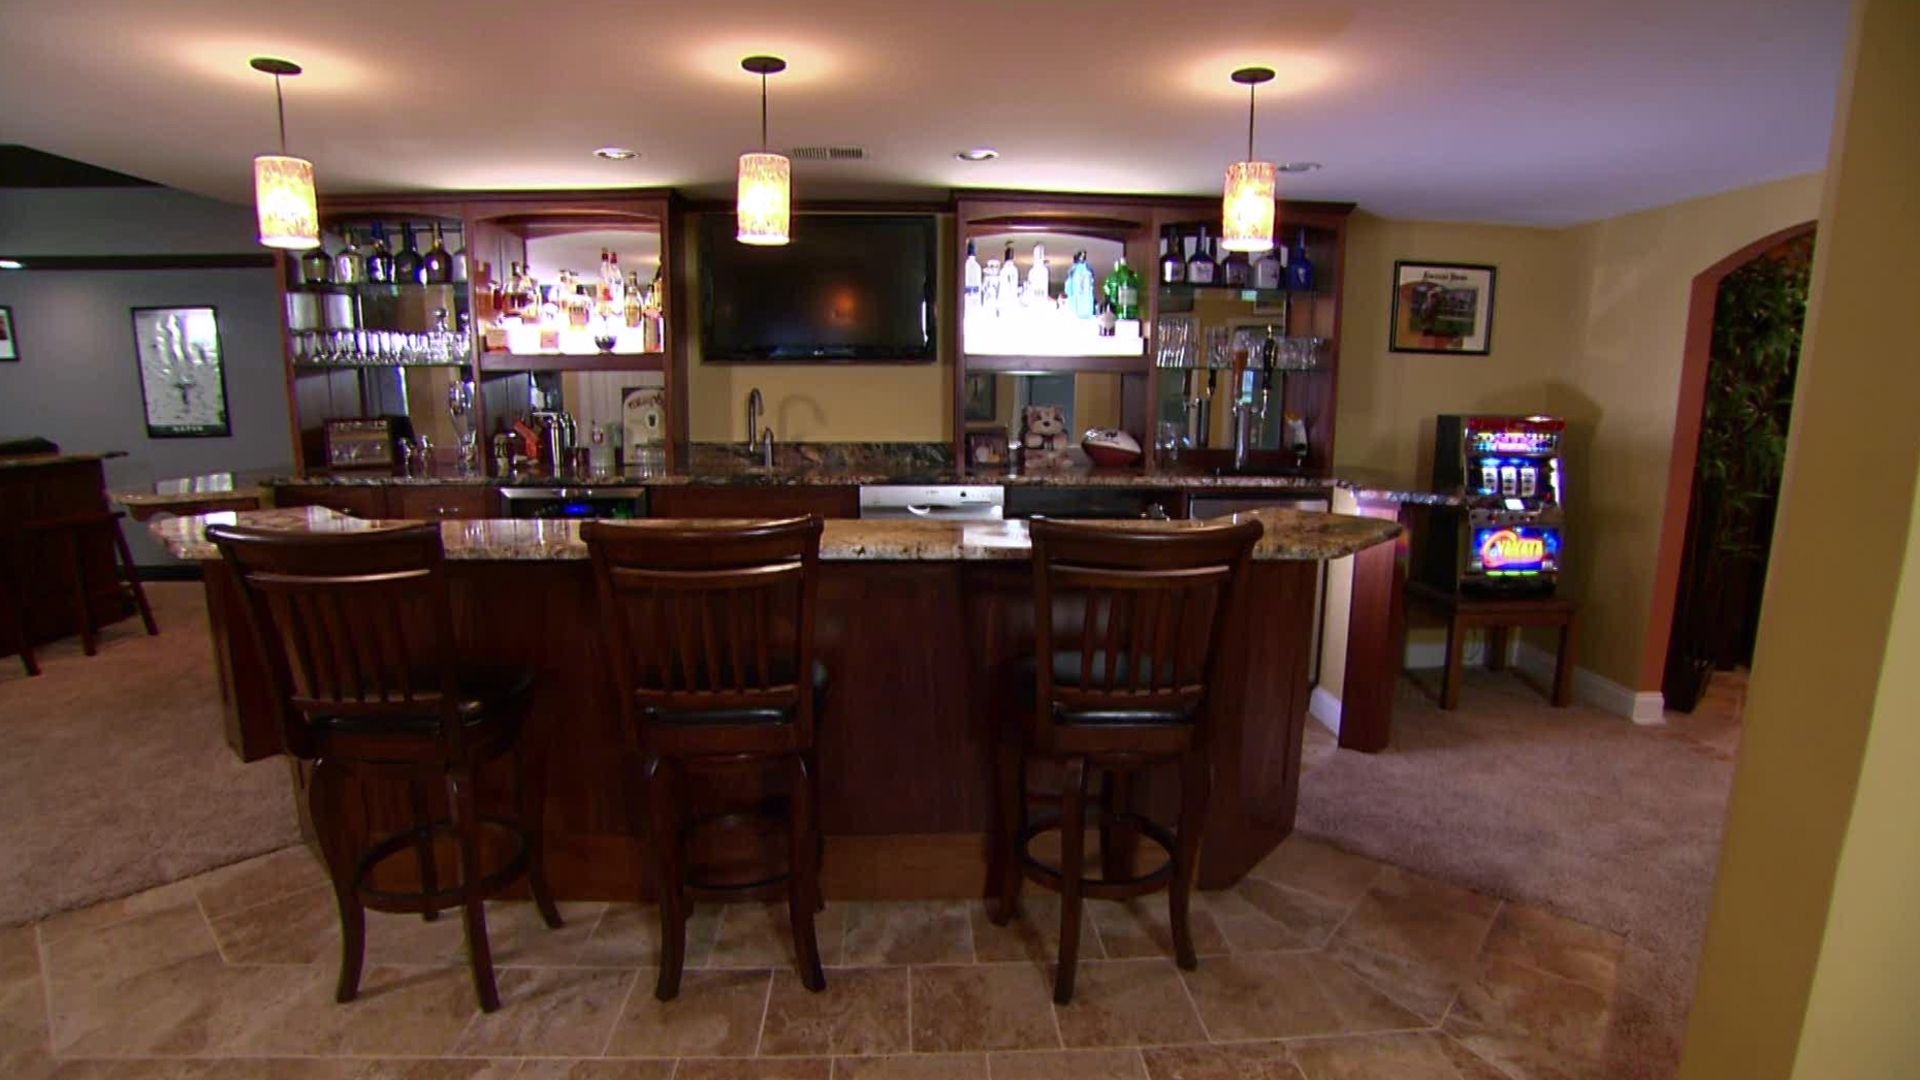 basement sports bar ideas architects home services for the home pinterest basement sports. Black Bedroom Furniture Sets. Home Design Ideas